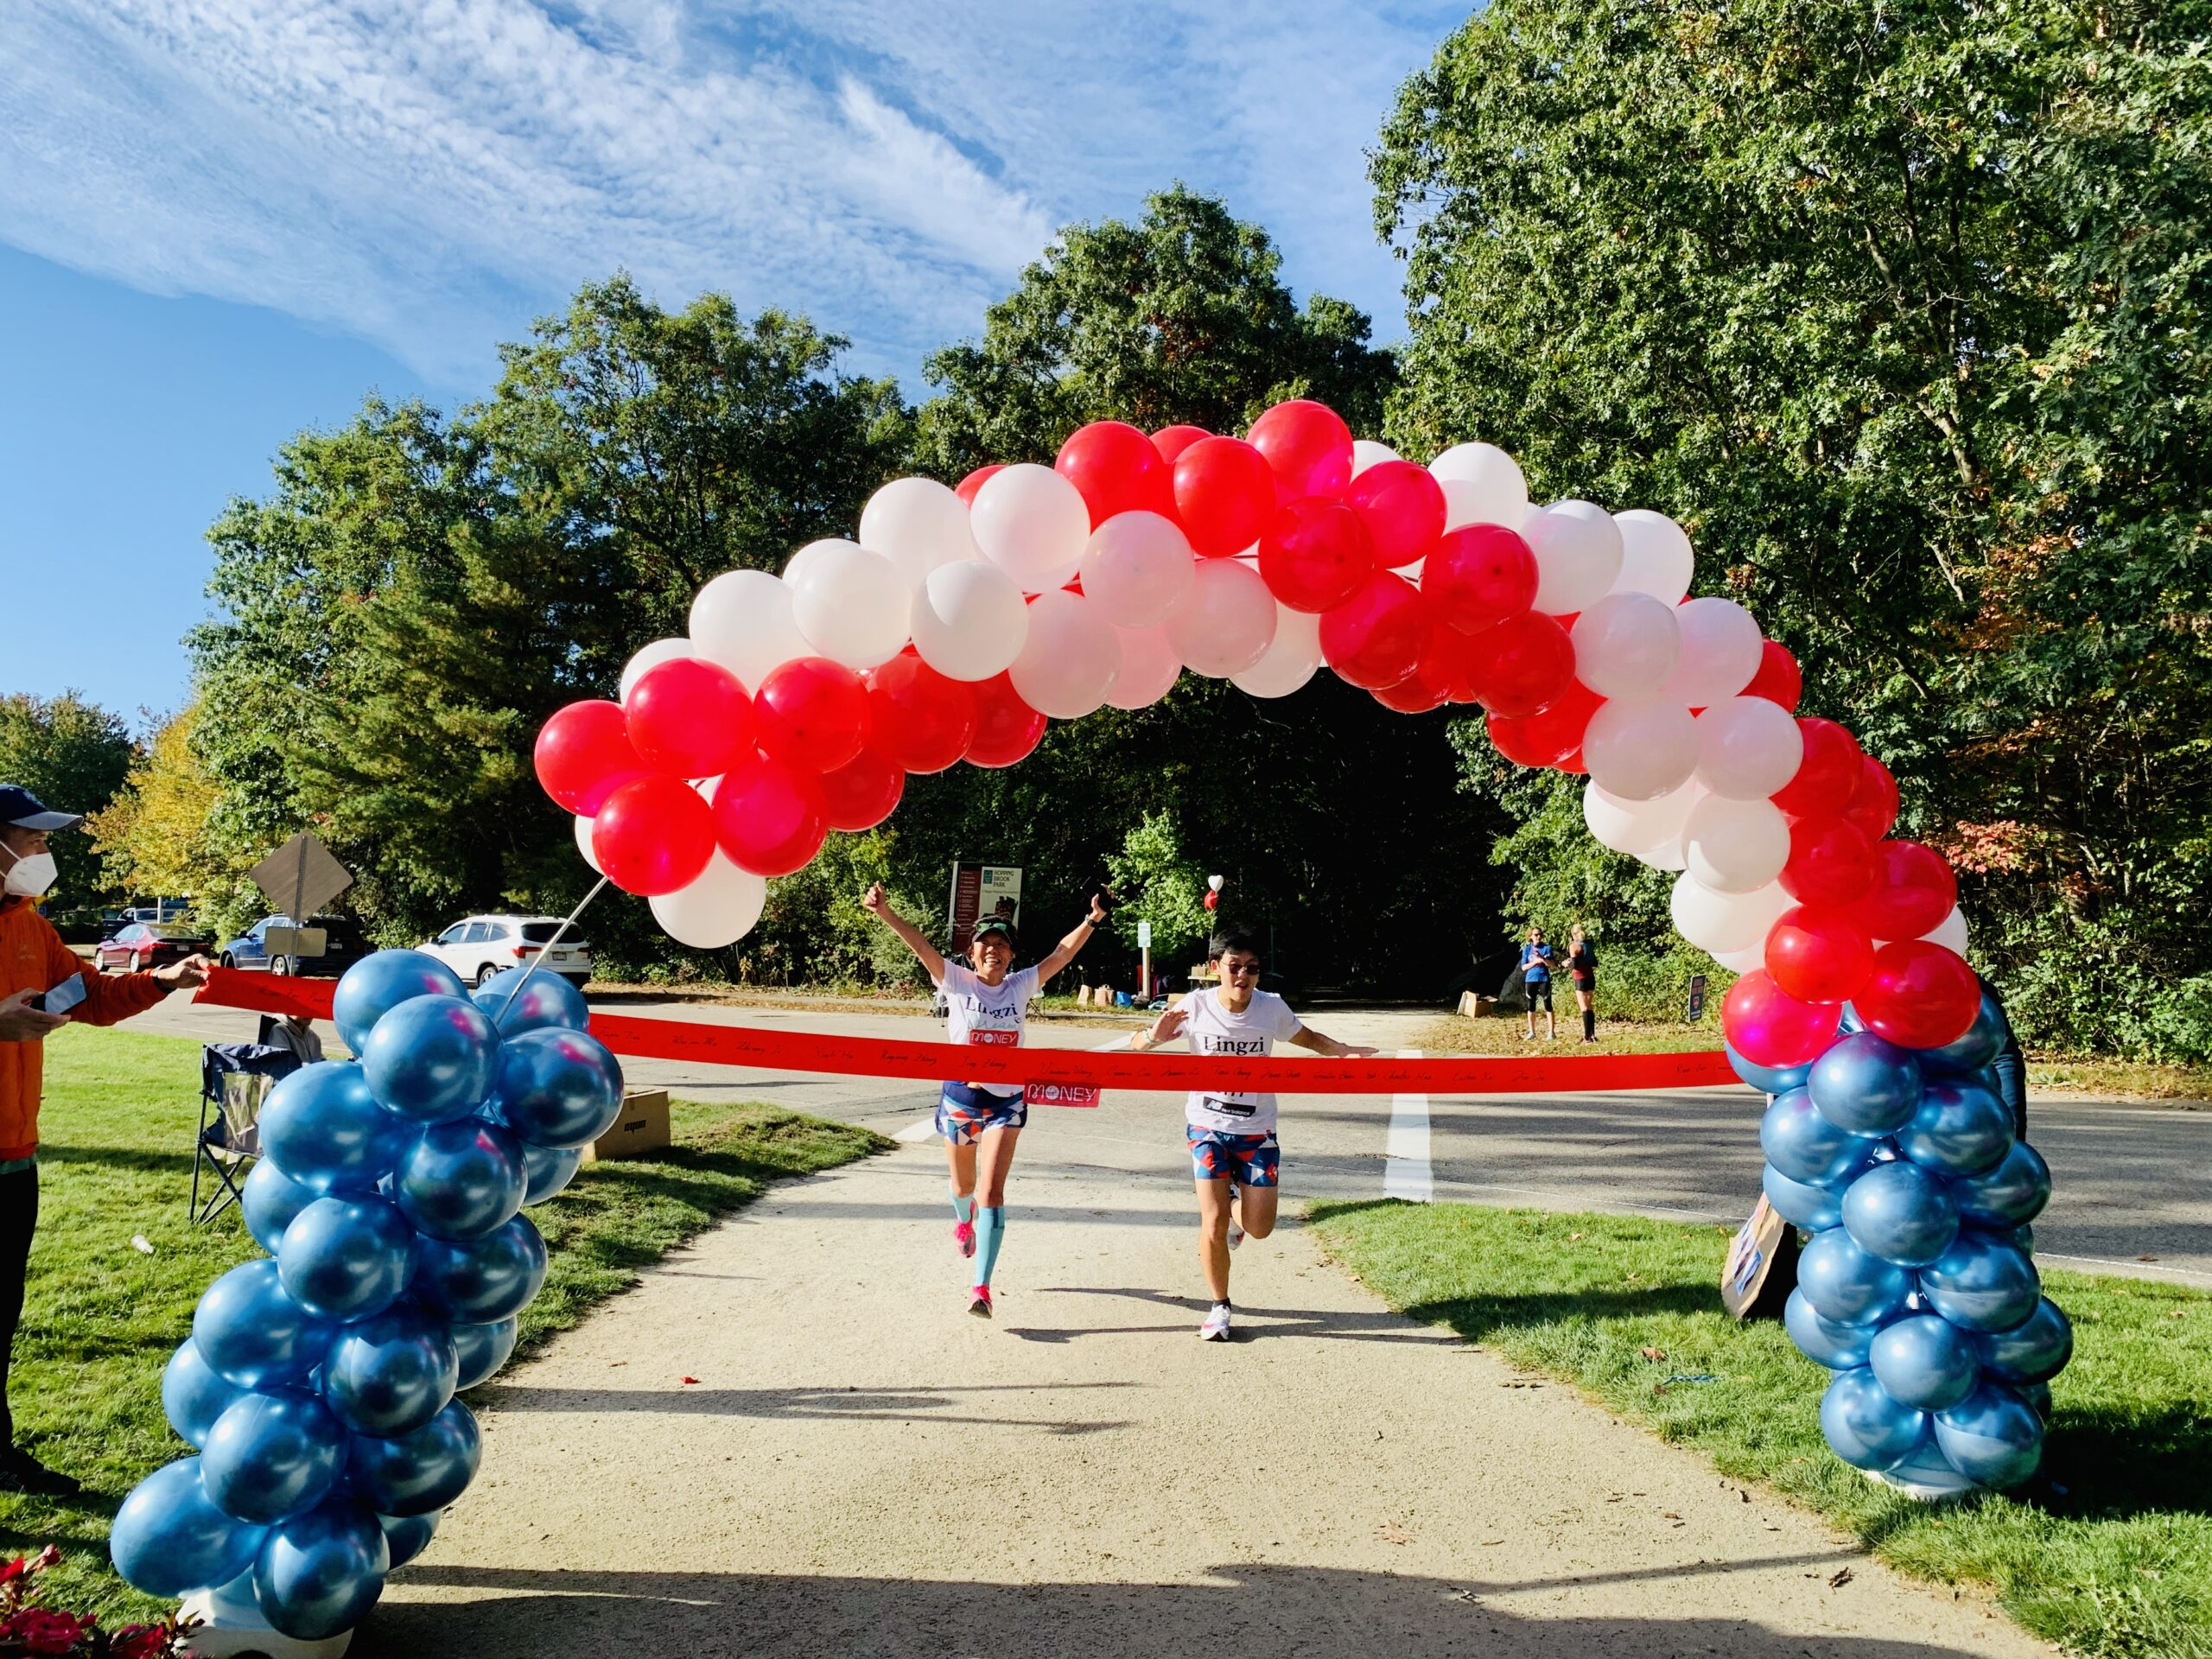 Connie Cao completes the 2020 London Virtual Marathon. Her son, Enchee Xu runs toward the finish line with his mother to complete his first 1/2 marathon.